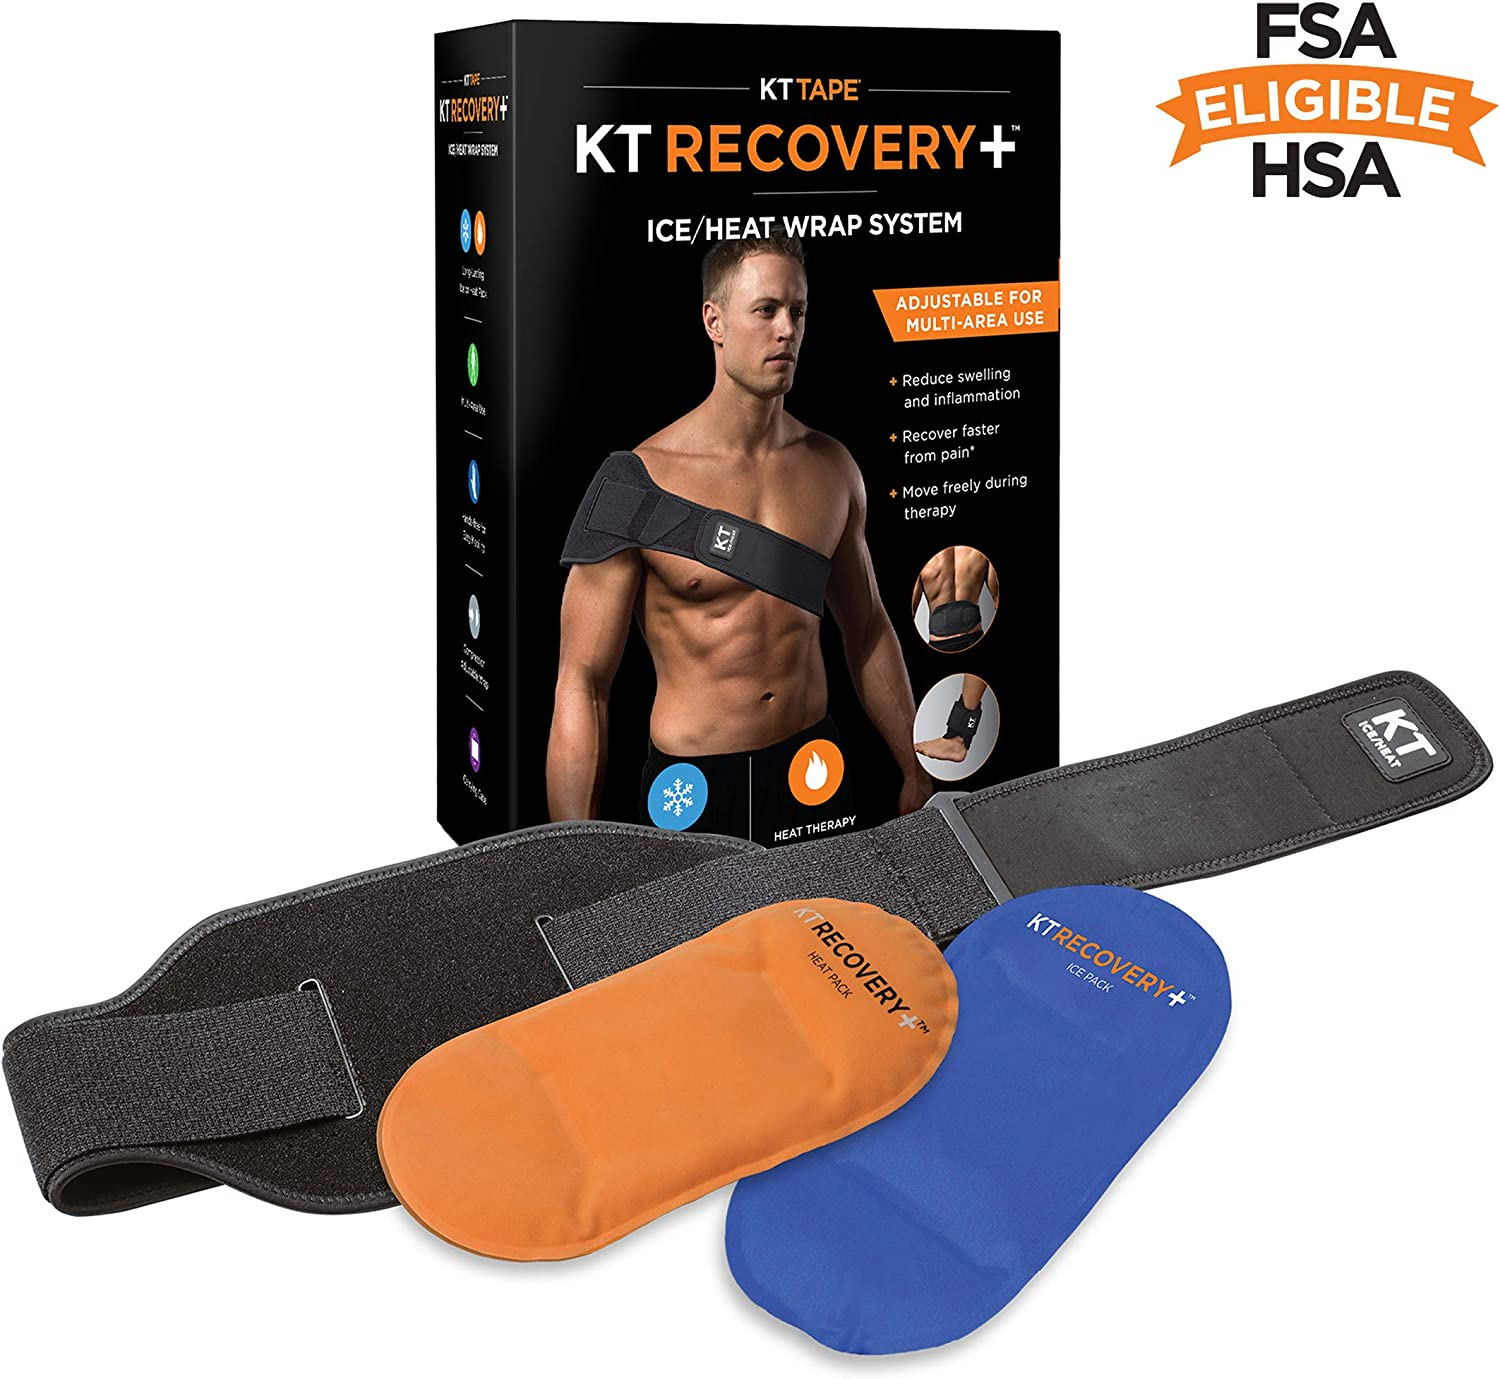 KT TAPE Recovery+ Compression Pad Therapy System, Heating & Ice Pack with Adjustable Wrap for Back/Muscle Pain Relief, Black